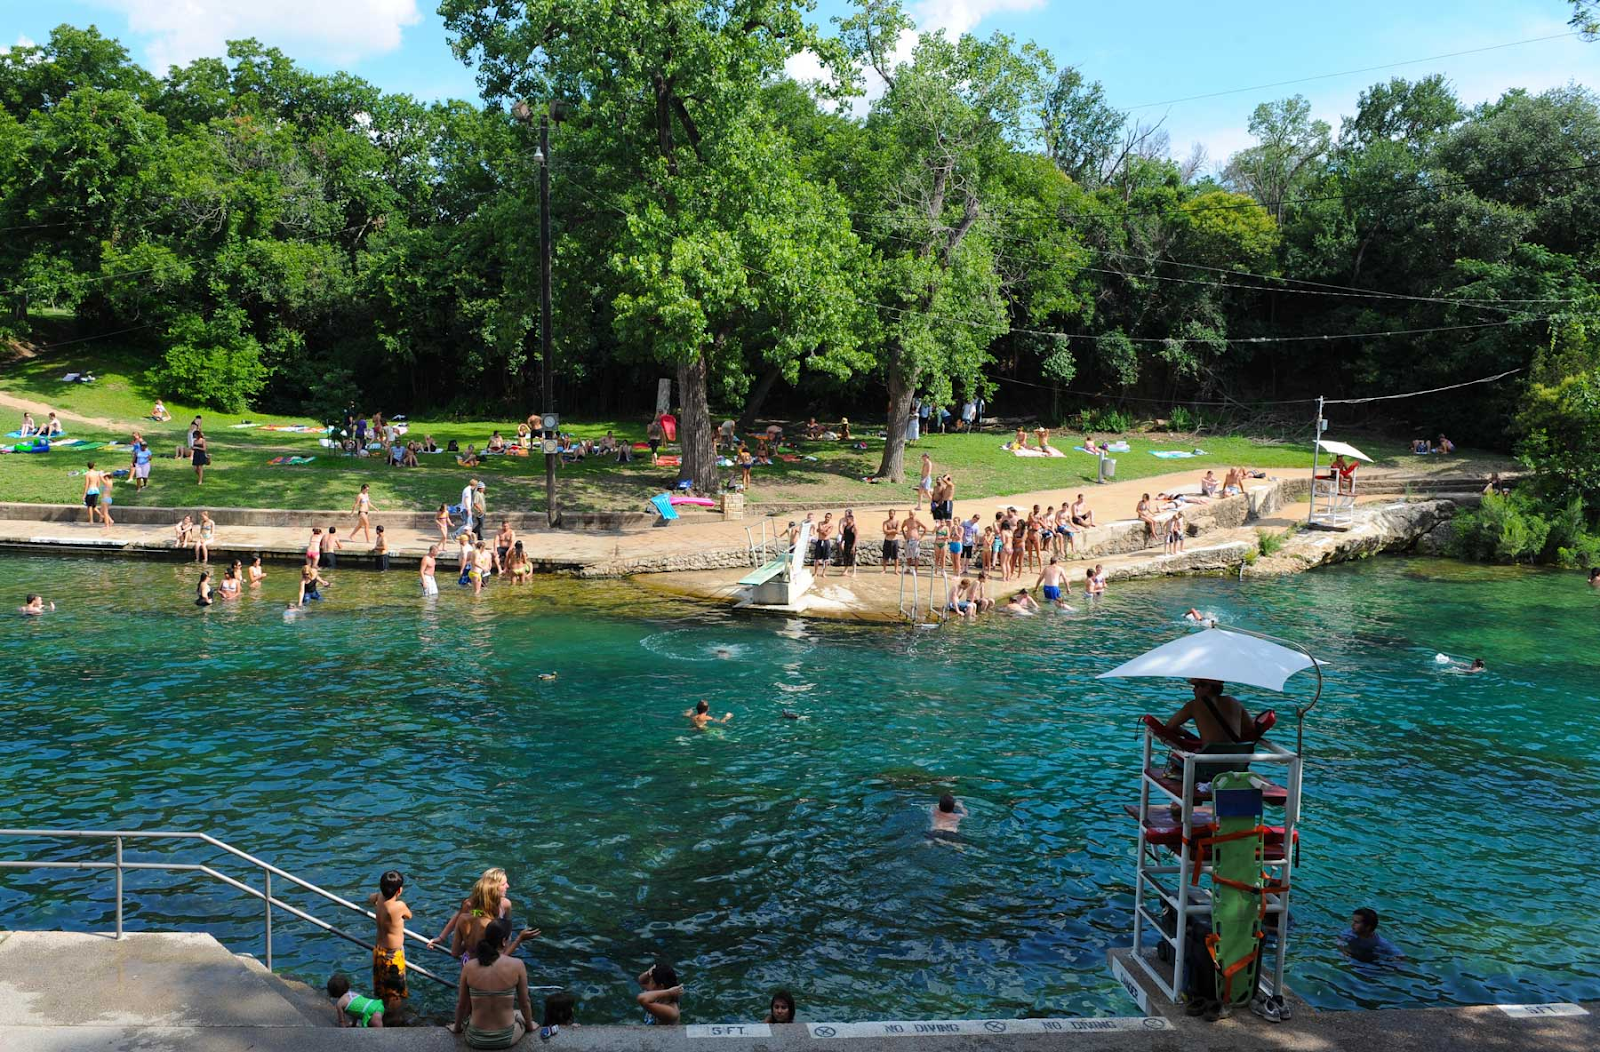 Things to do in Austin, Texas - Barton Springs Pool